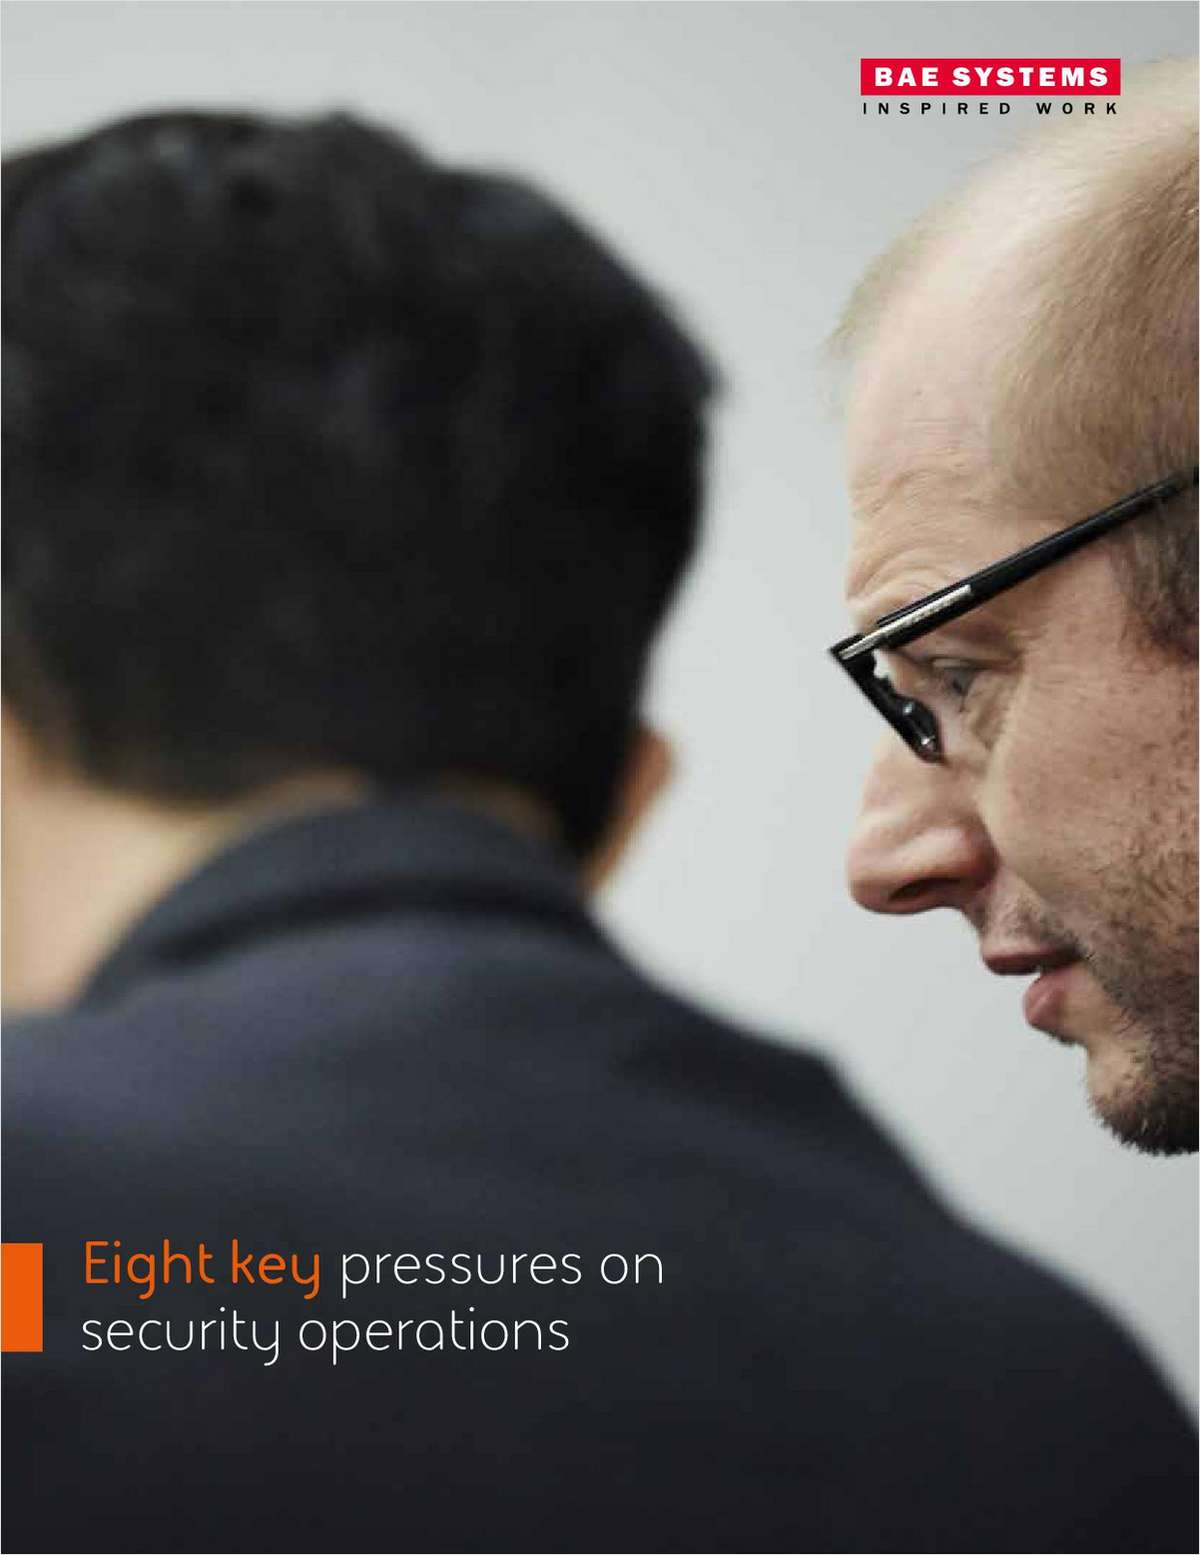 Eight Key Pressures on Security Operations